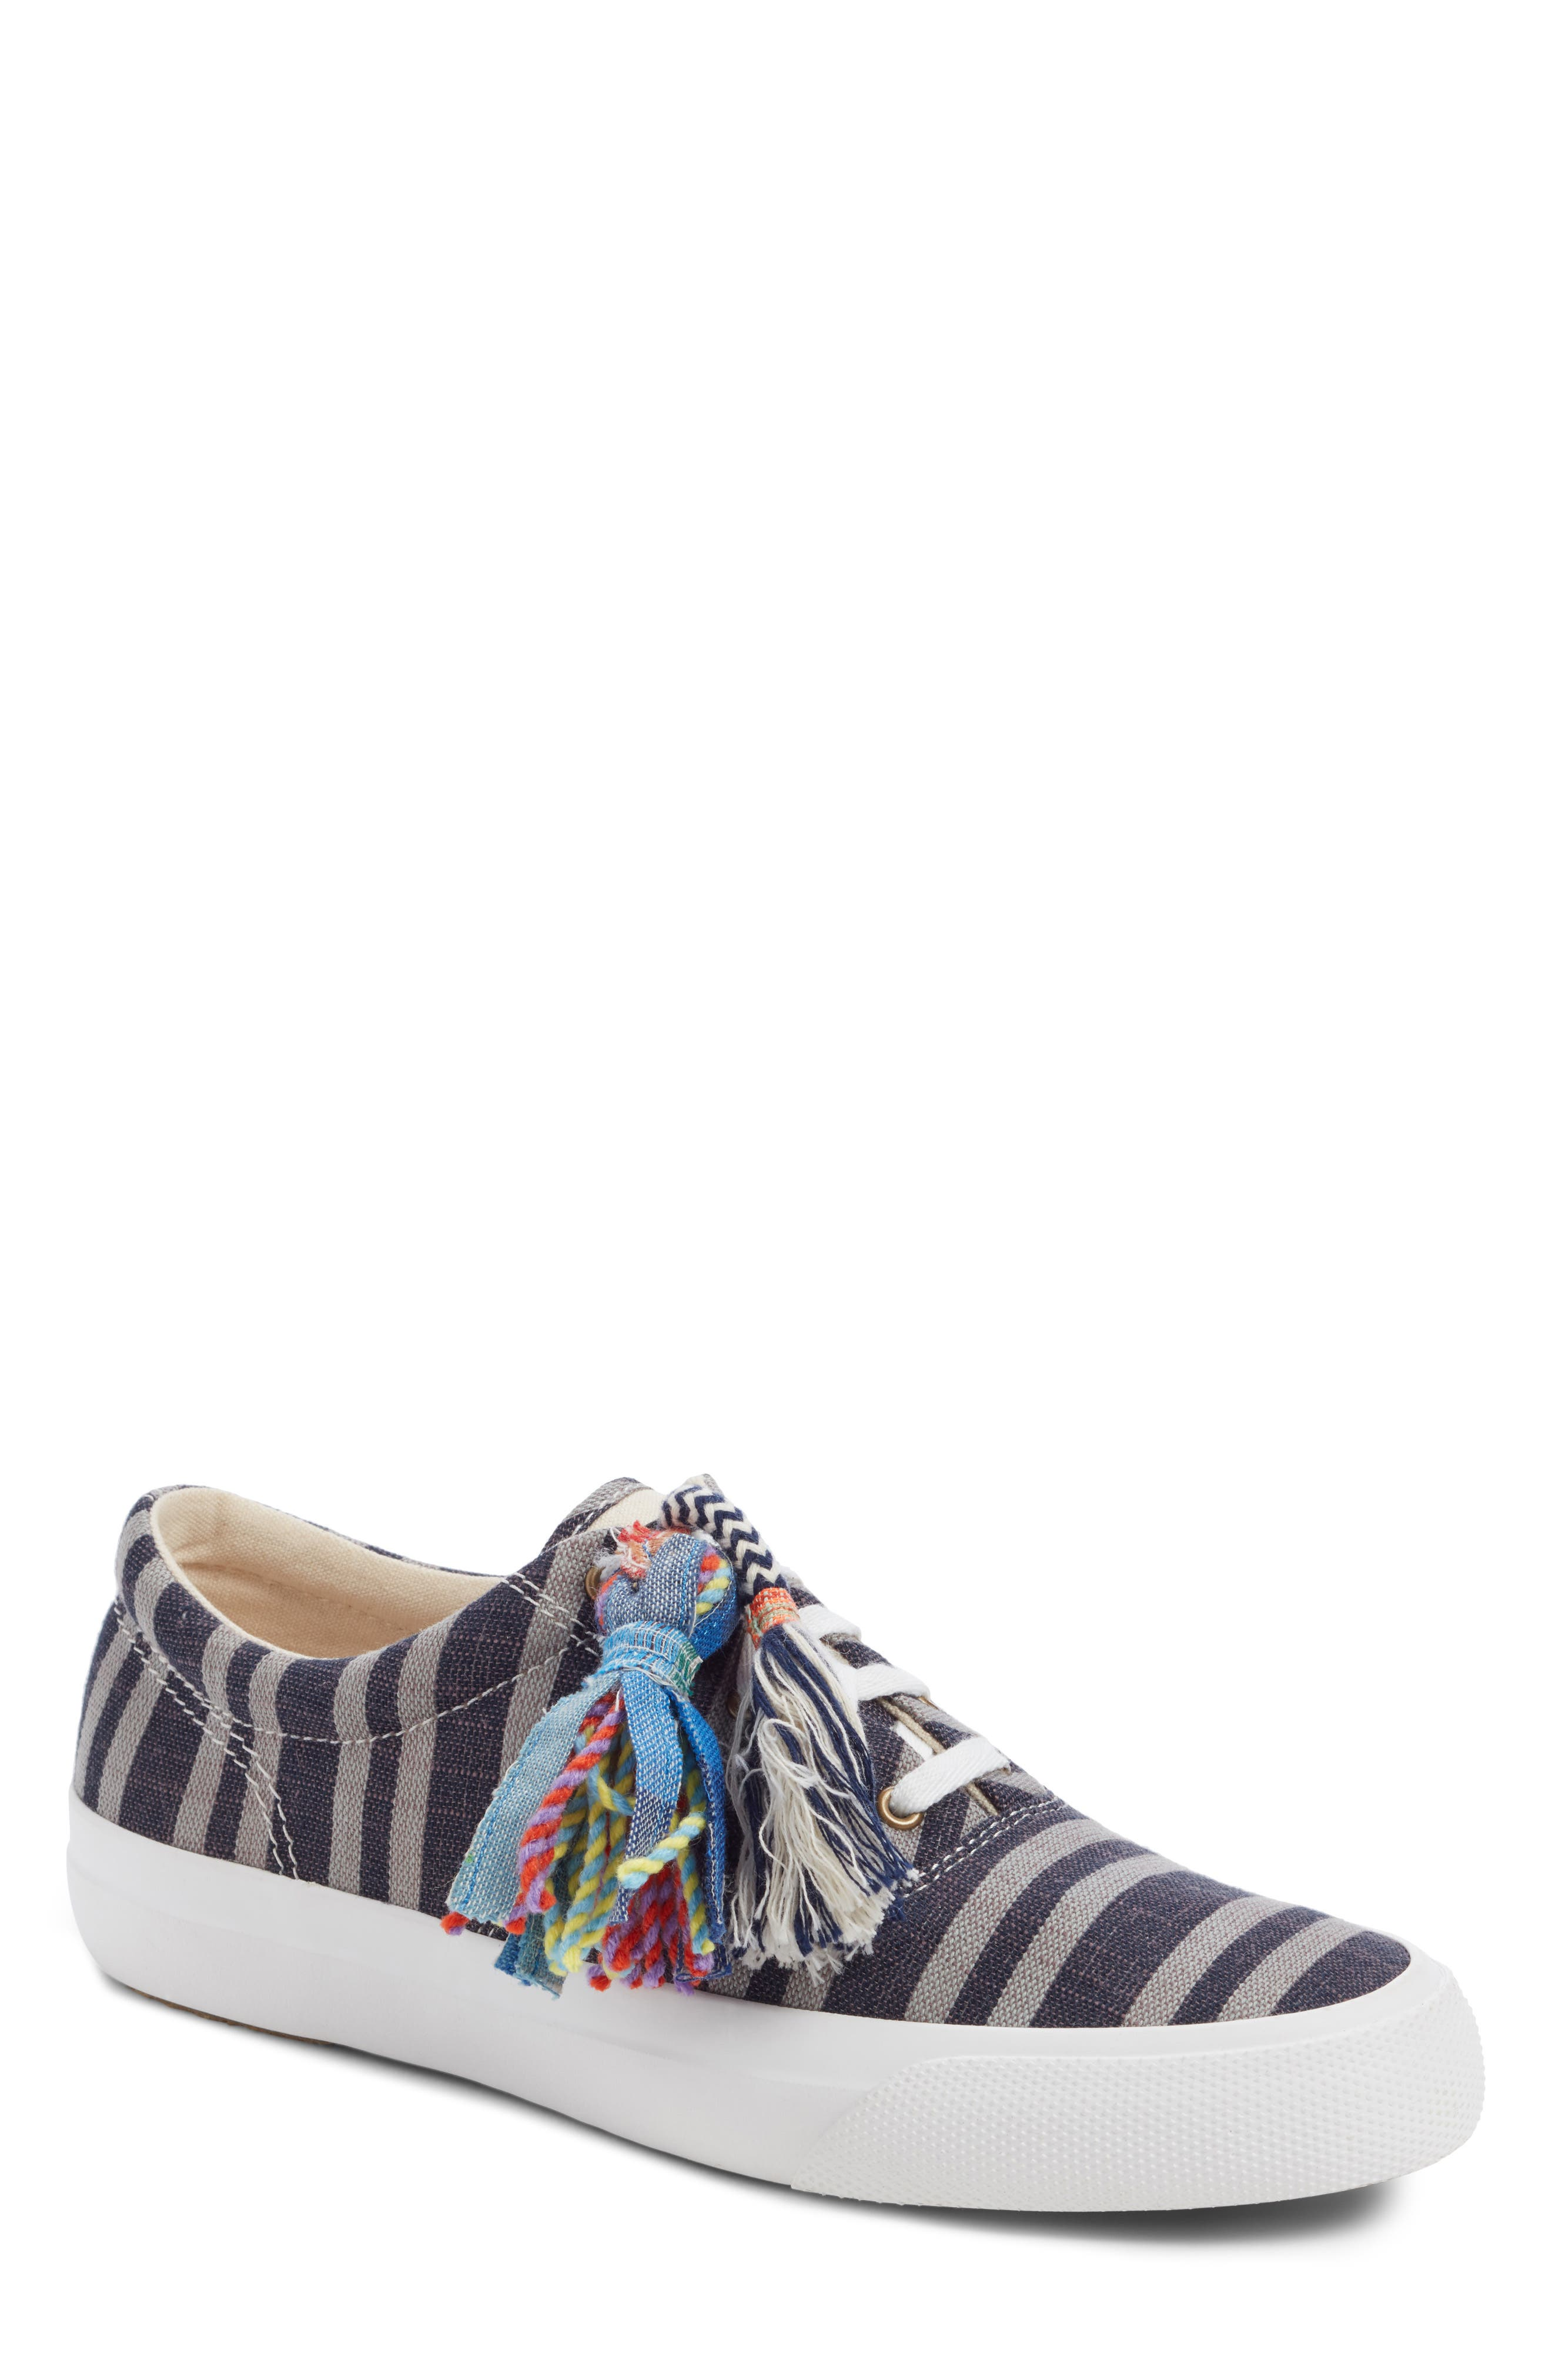 Keds X Ace & Jig Anchor Channel Sneaker, Black